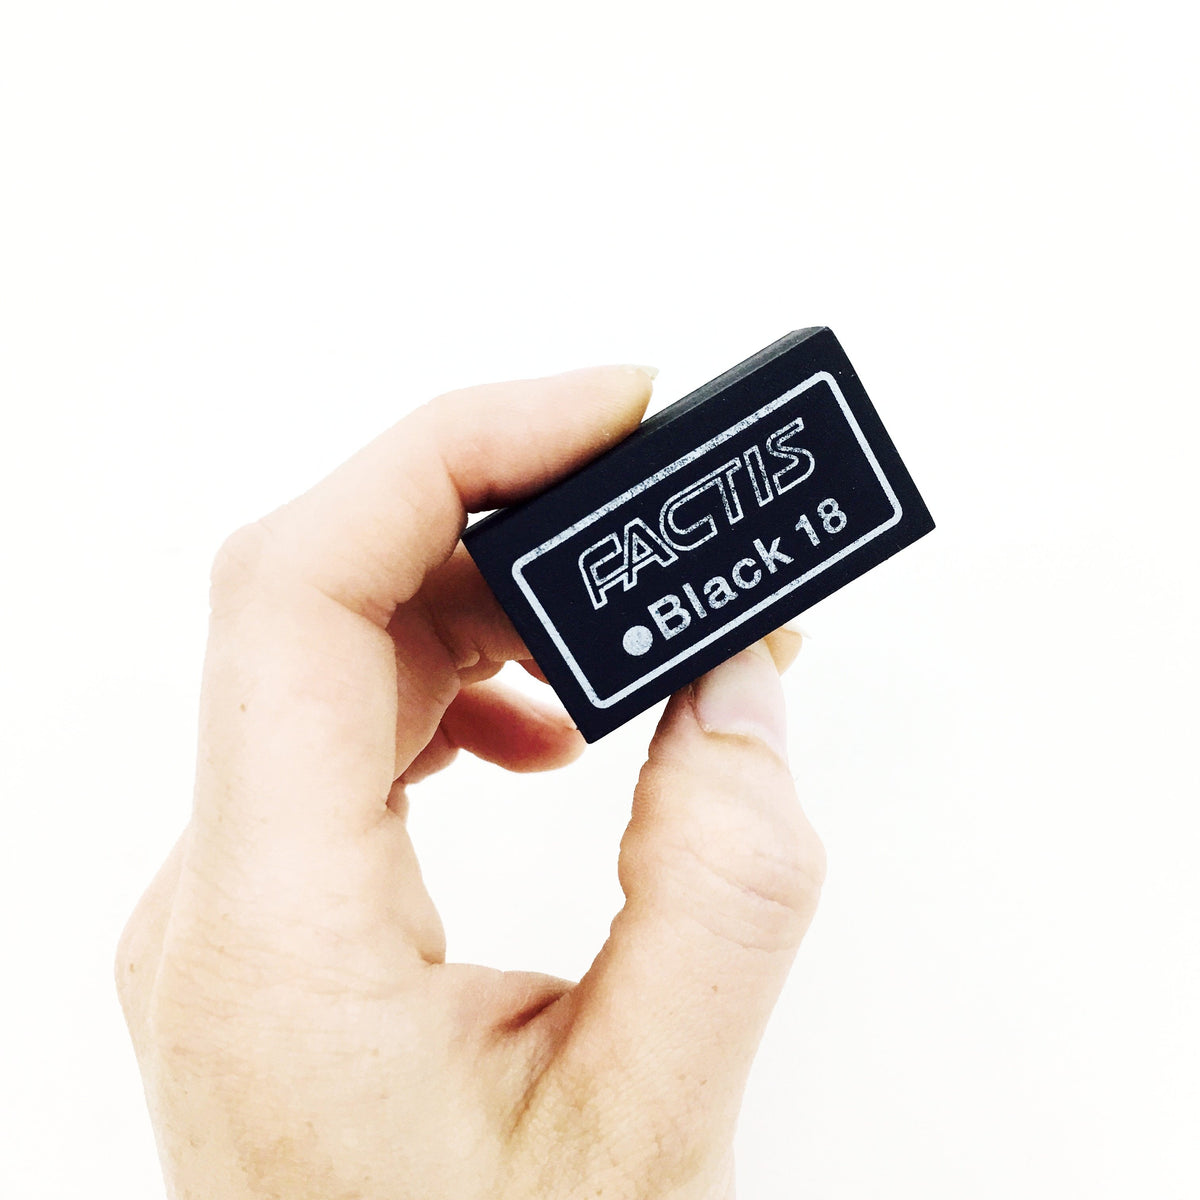 General's Factis Magic Black Eraser